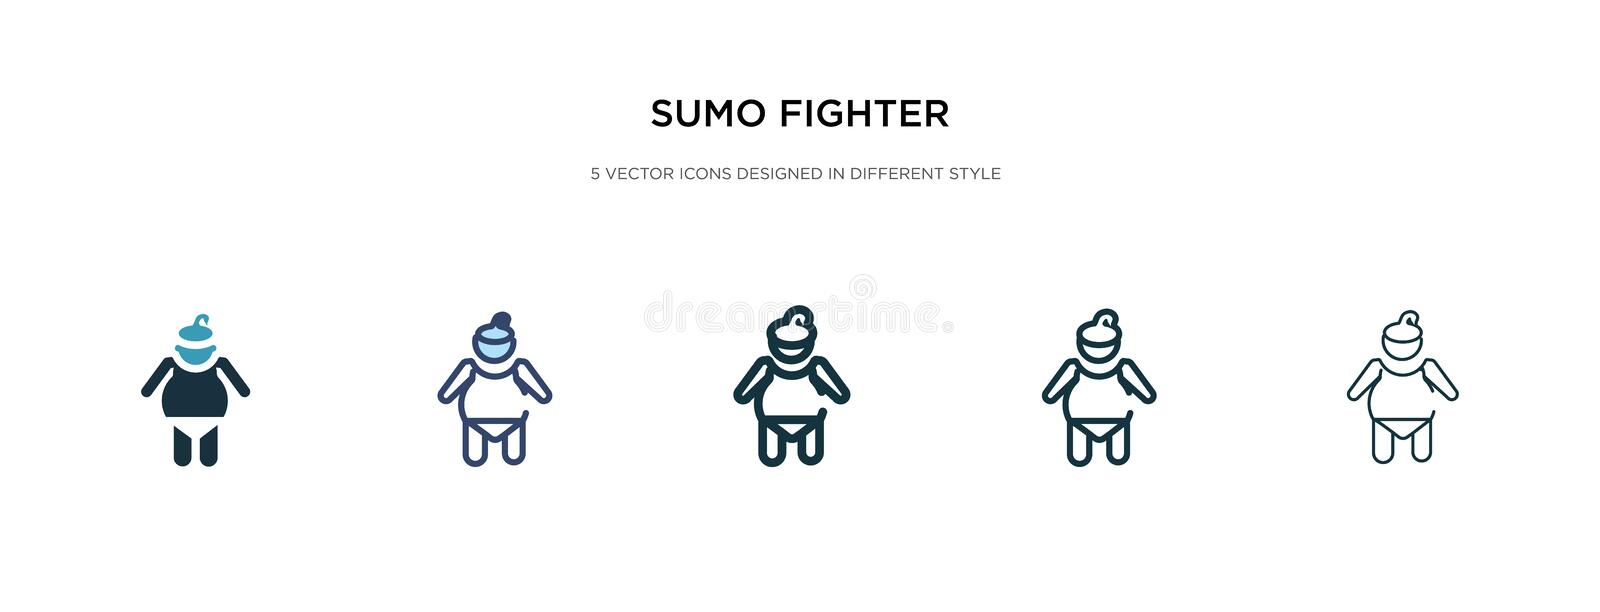 Sumo fighter icon in different style vector illustration. two colored and black sumo fighter vector icons designed in filled, vector illustration